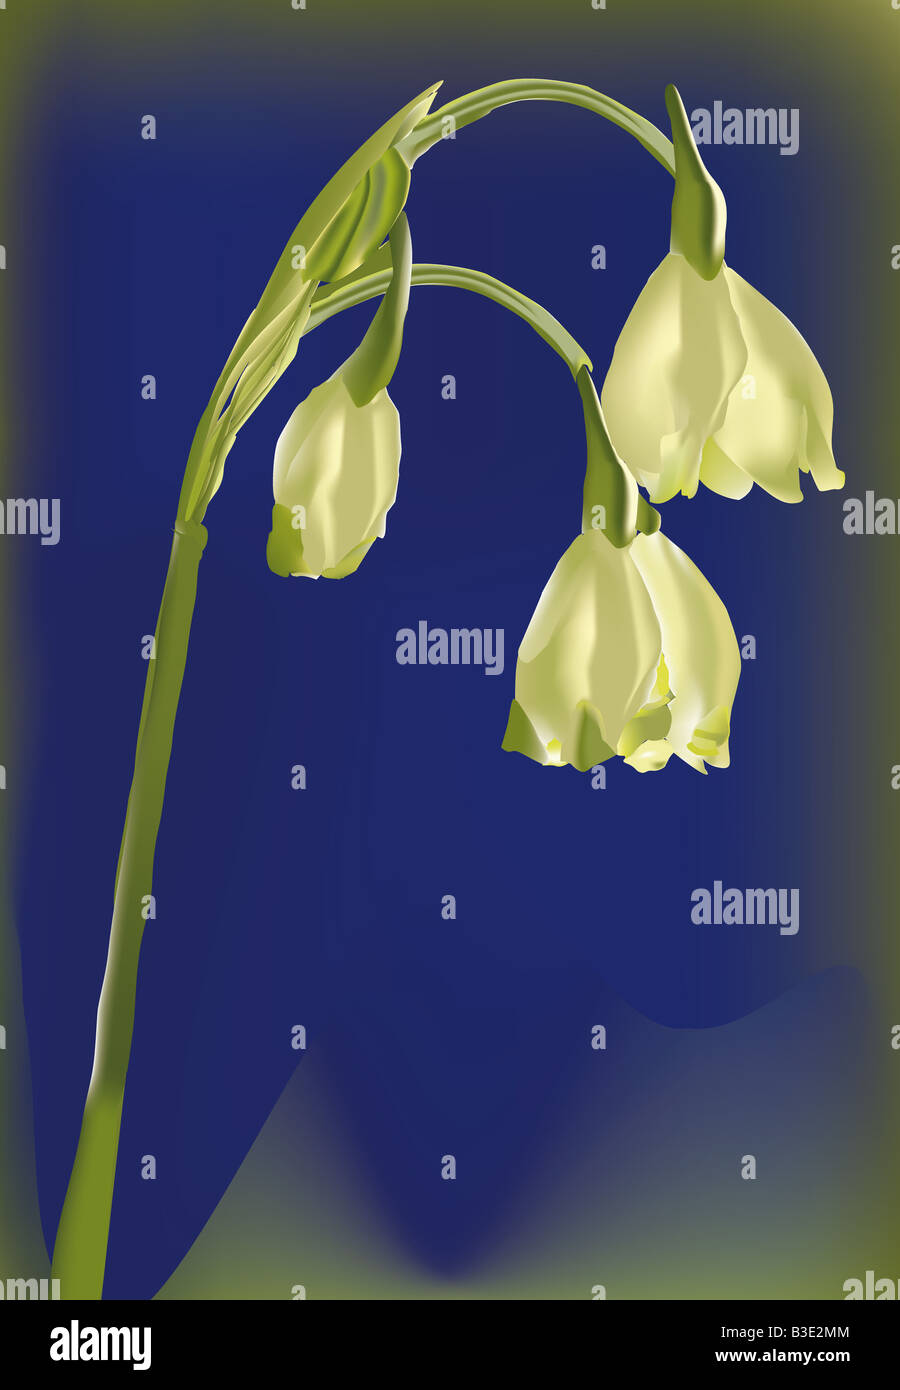 illutration of a flower in a blue background - Stock Image